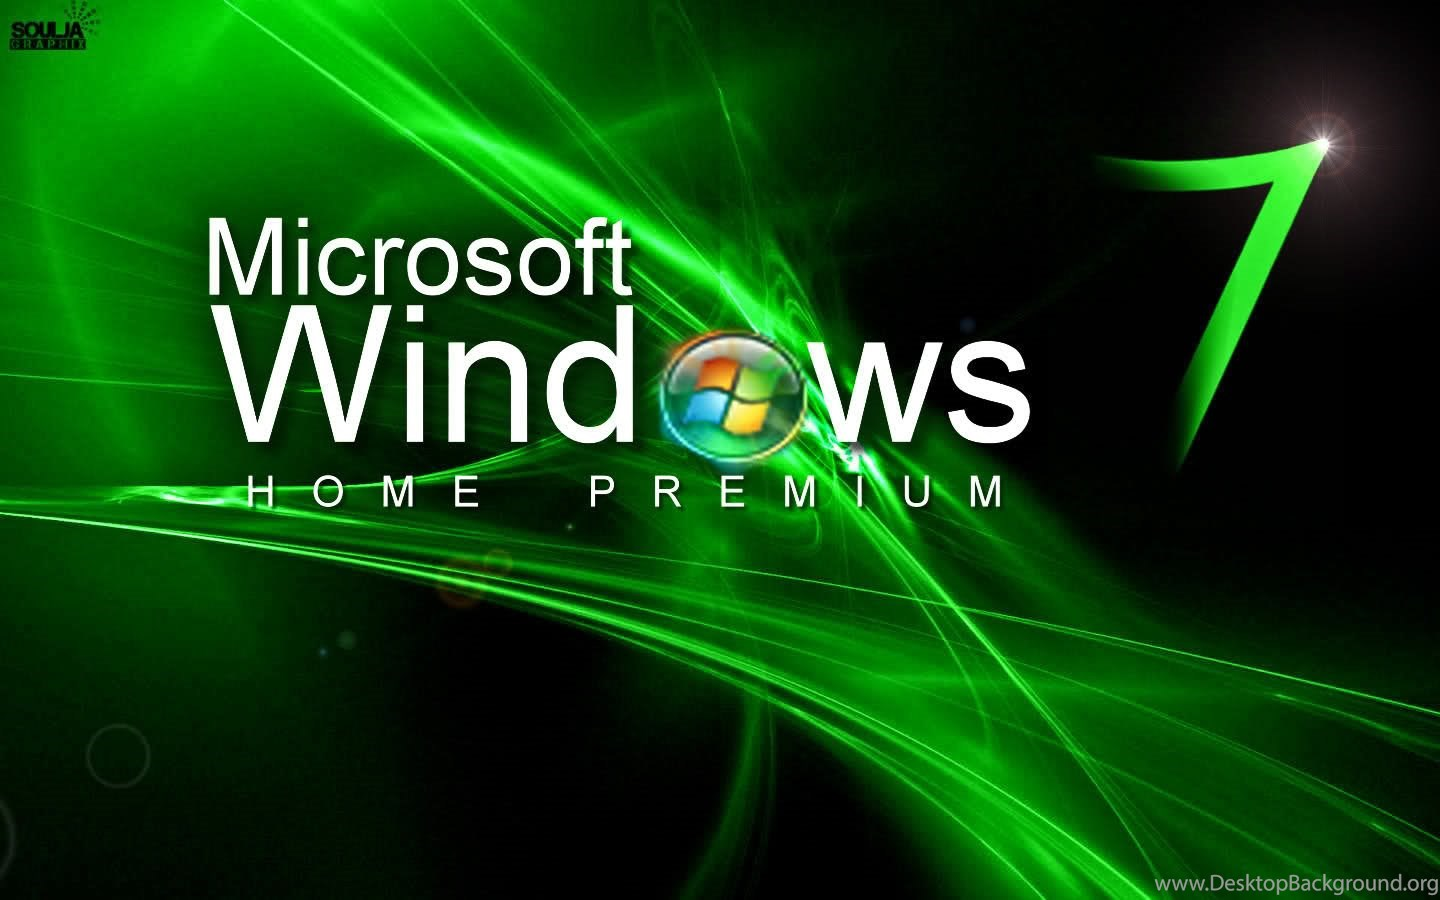 Free HD Windows Wallpapers For